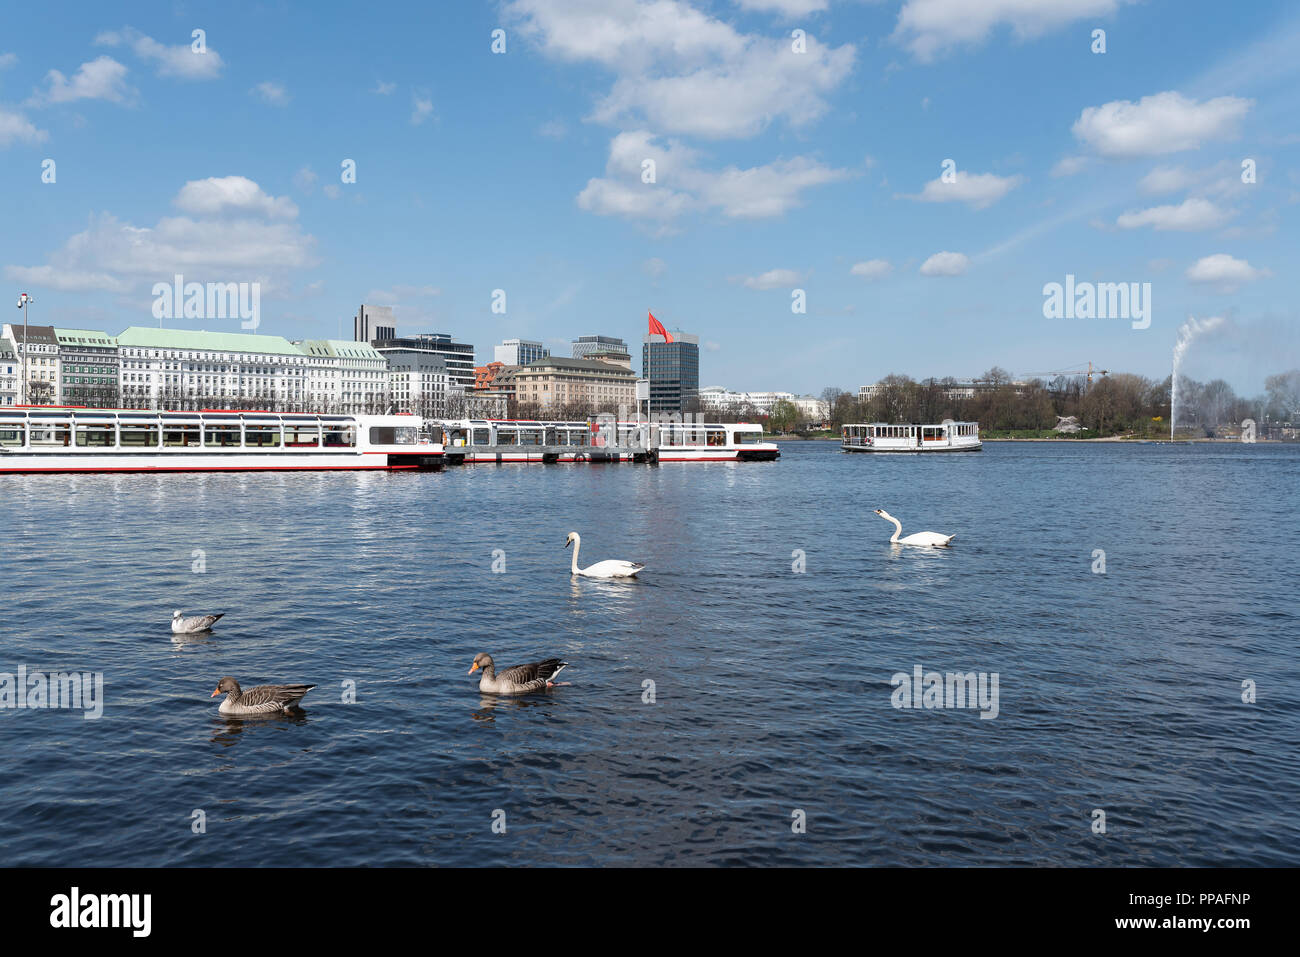 waterbirds on Alster Lake in Hamburg, Germany - Stock Image